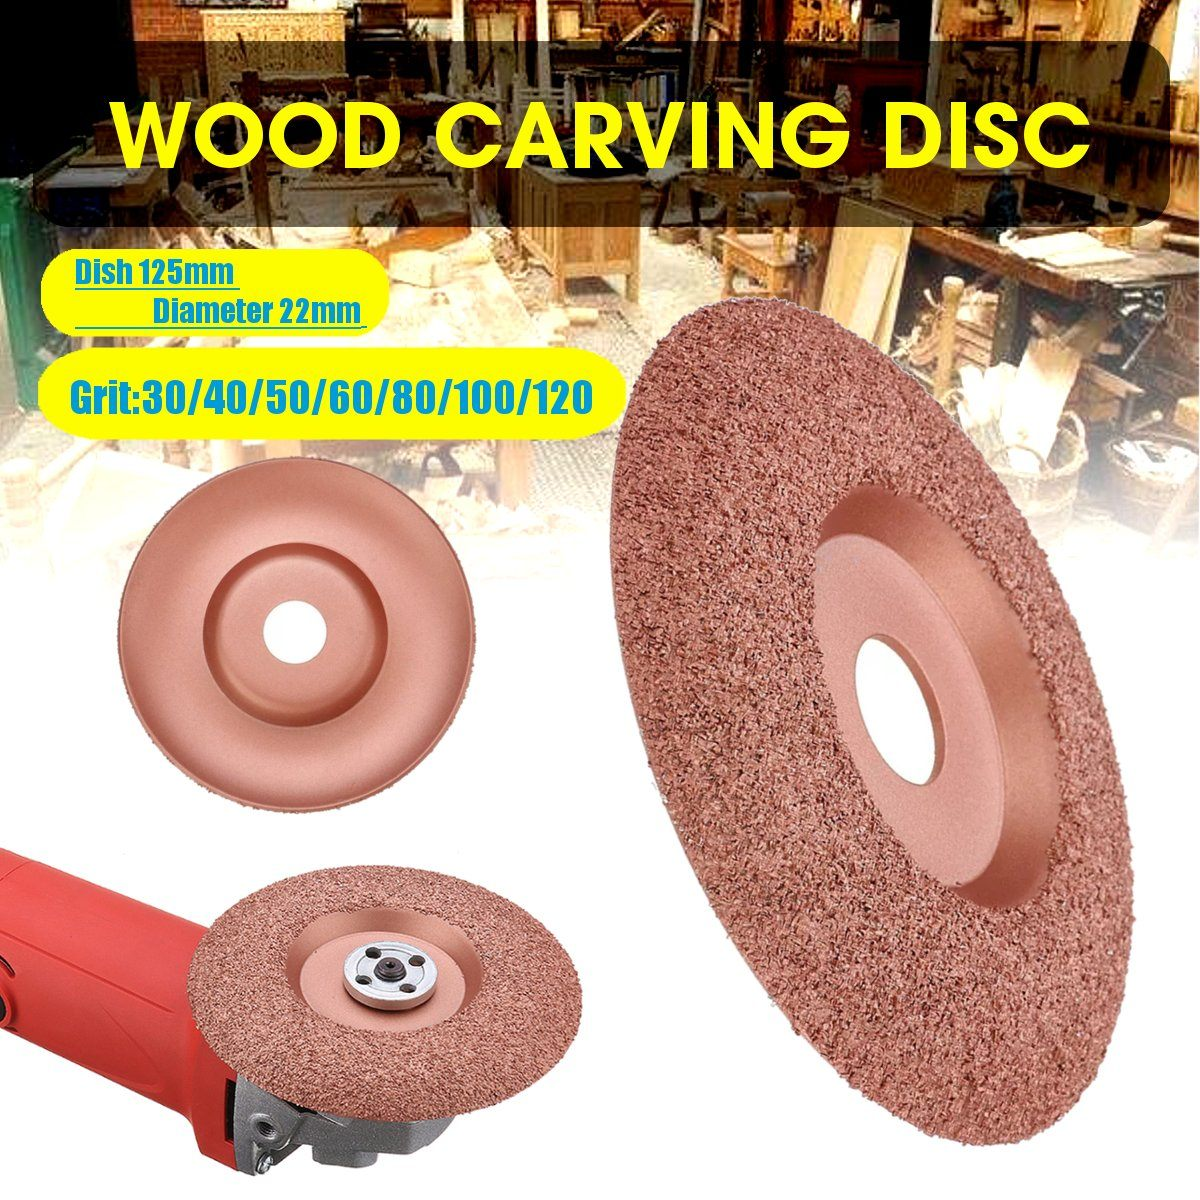 125mm Diameter 22mm Bore Wood Carving Disc Angle Grinder Disc Tungsten Carbide Shaping Dish Wood Shaping Disc